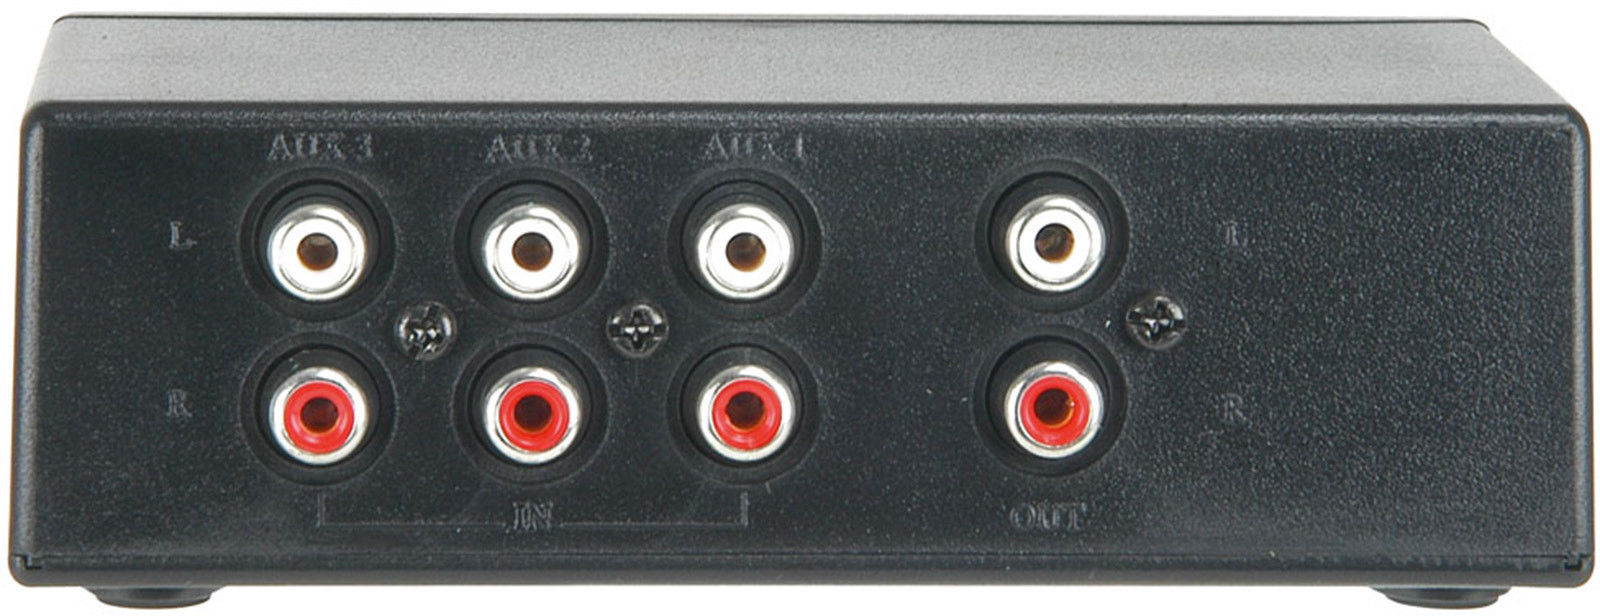 3 Way Stereo Audio Switch All Top Notch 2 Phono Box